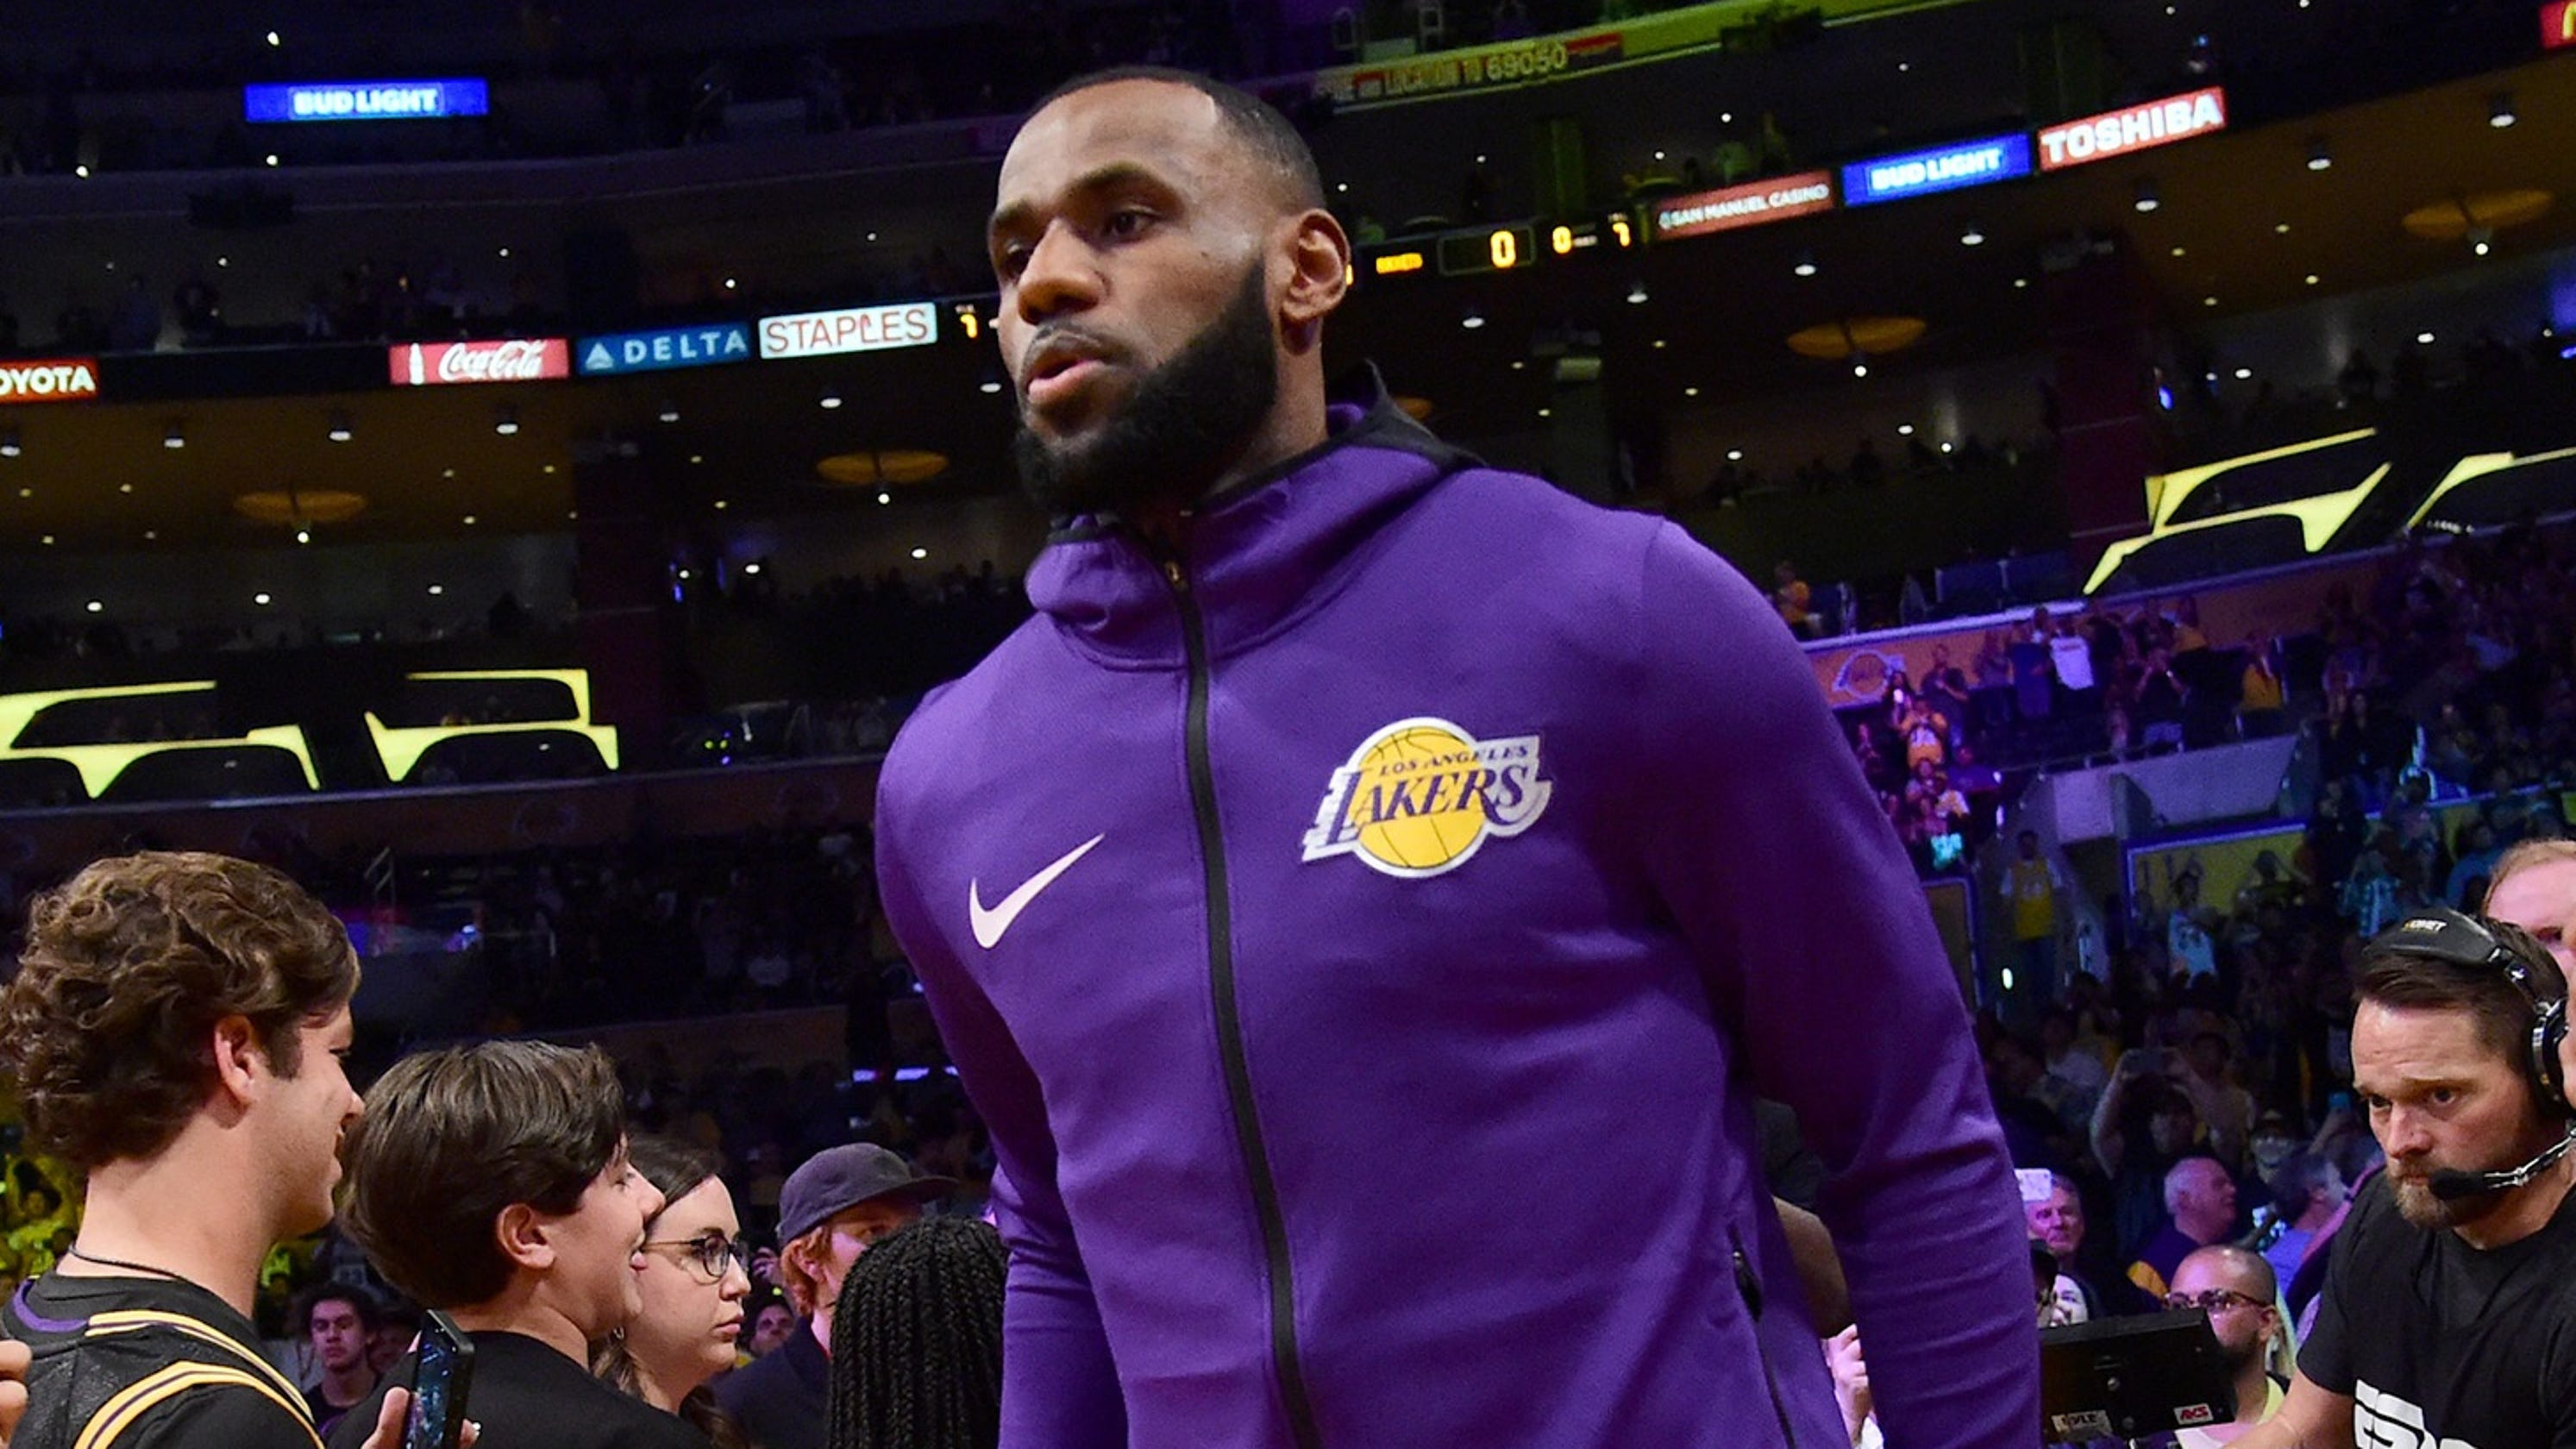 841cbfe7d85 LeBron James the brightest star among stars at Lakers home debut